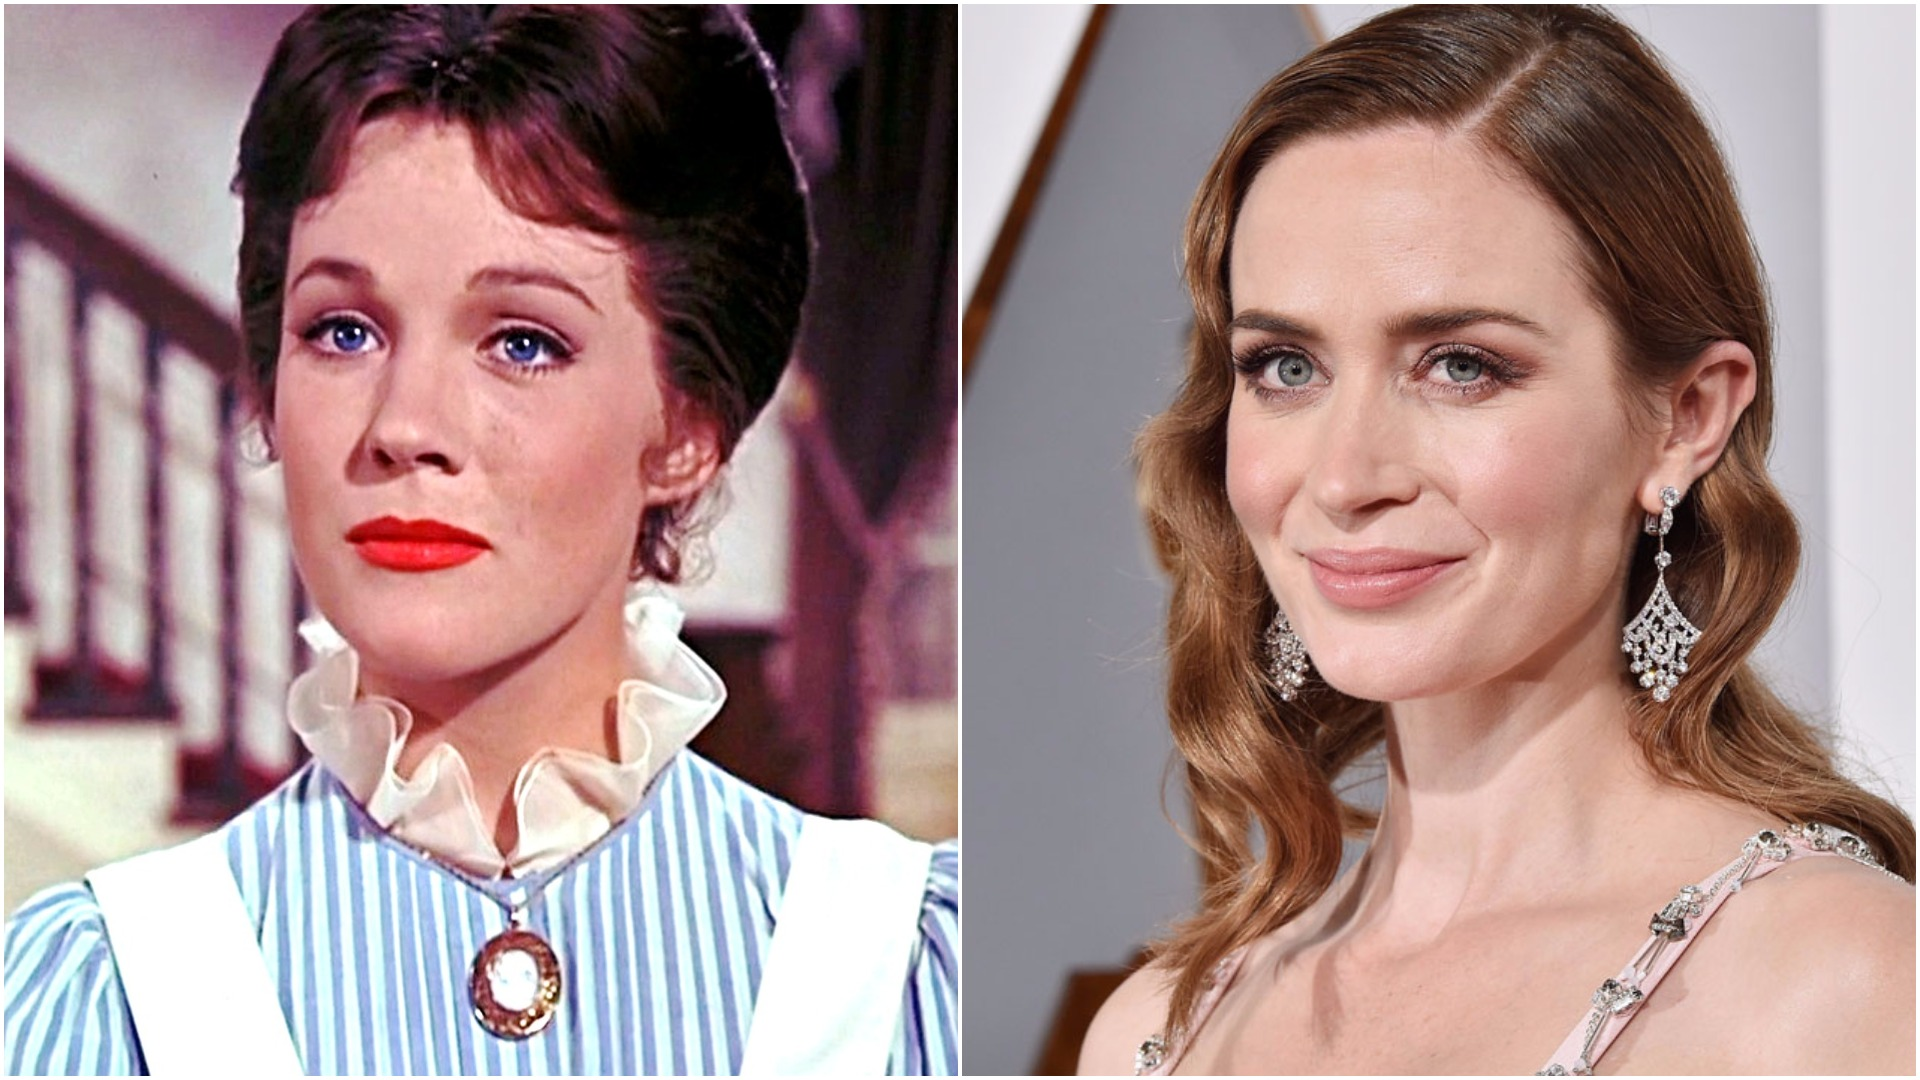 Julie Andrews has finally had her say on Emily Blunt playing Mary Poppins